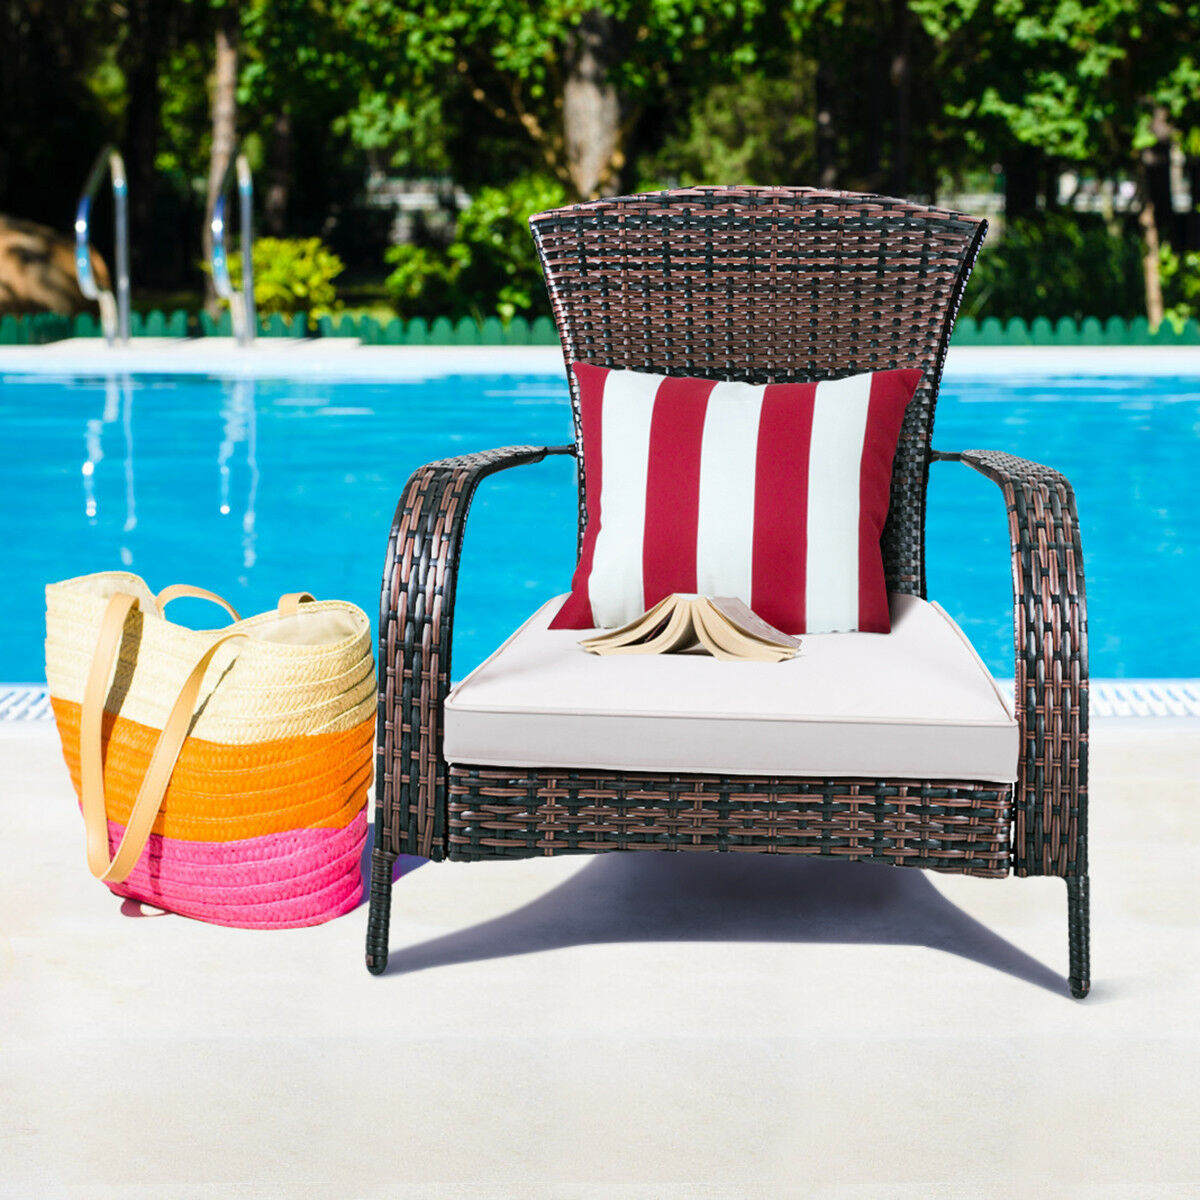 Costway Outdoor Wicker Rattan Patio Porch Deck Adirondack Chair Seat Cushion Mix Brown